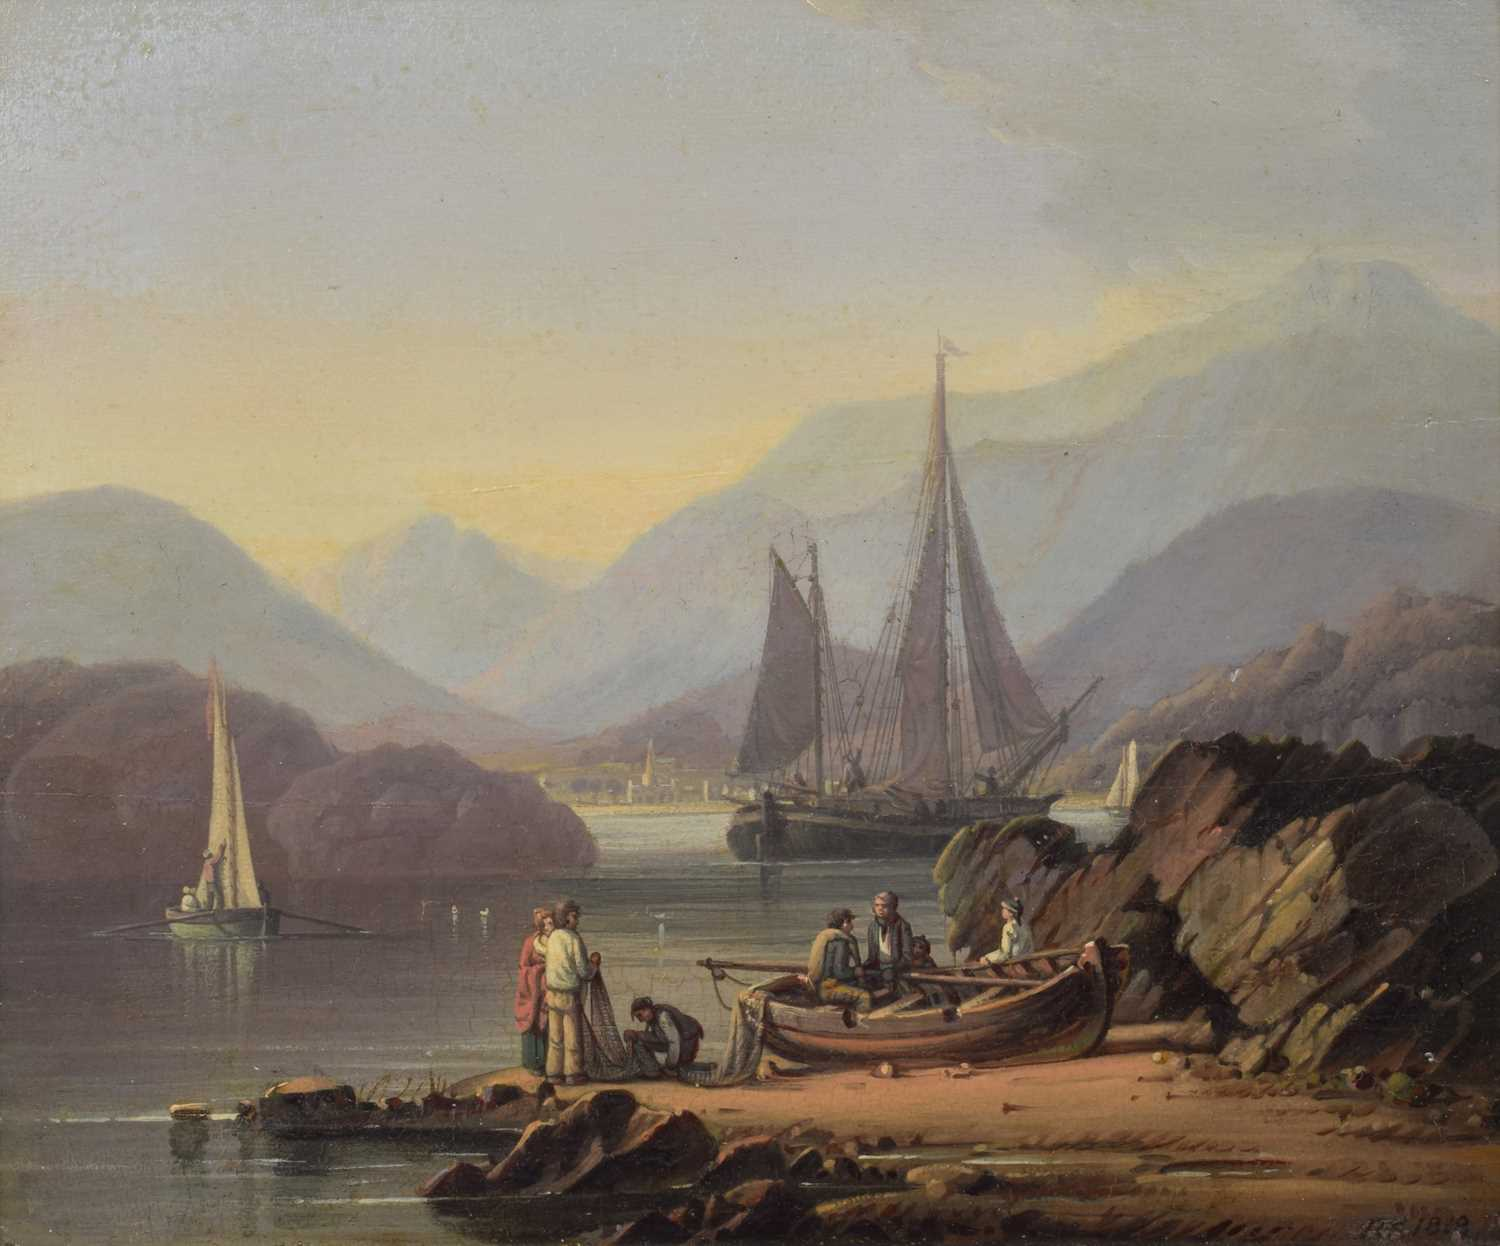 206 - Robert Salmon, Coastal scene with boats and figures, oil.